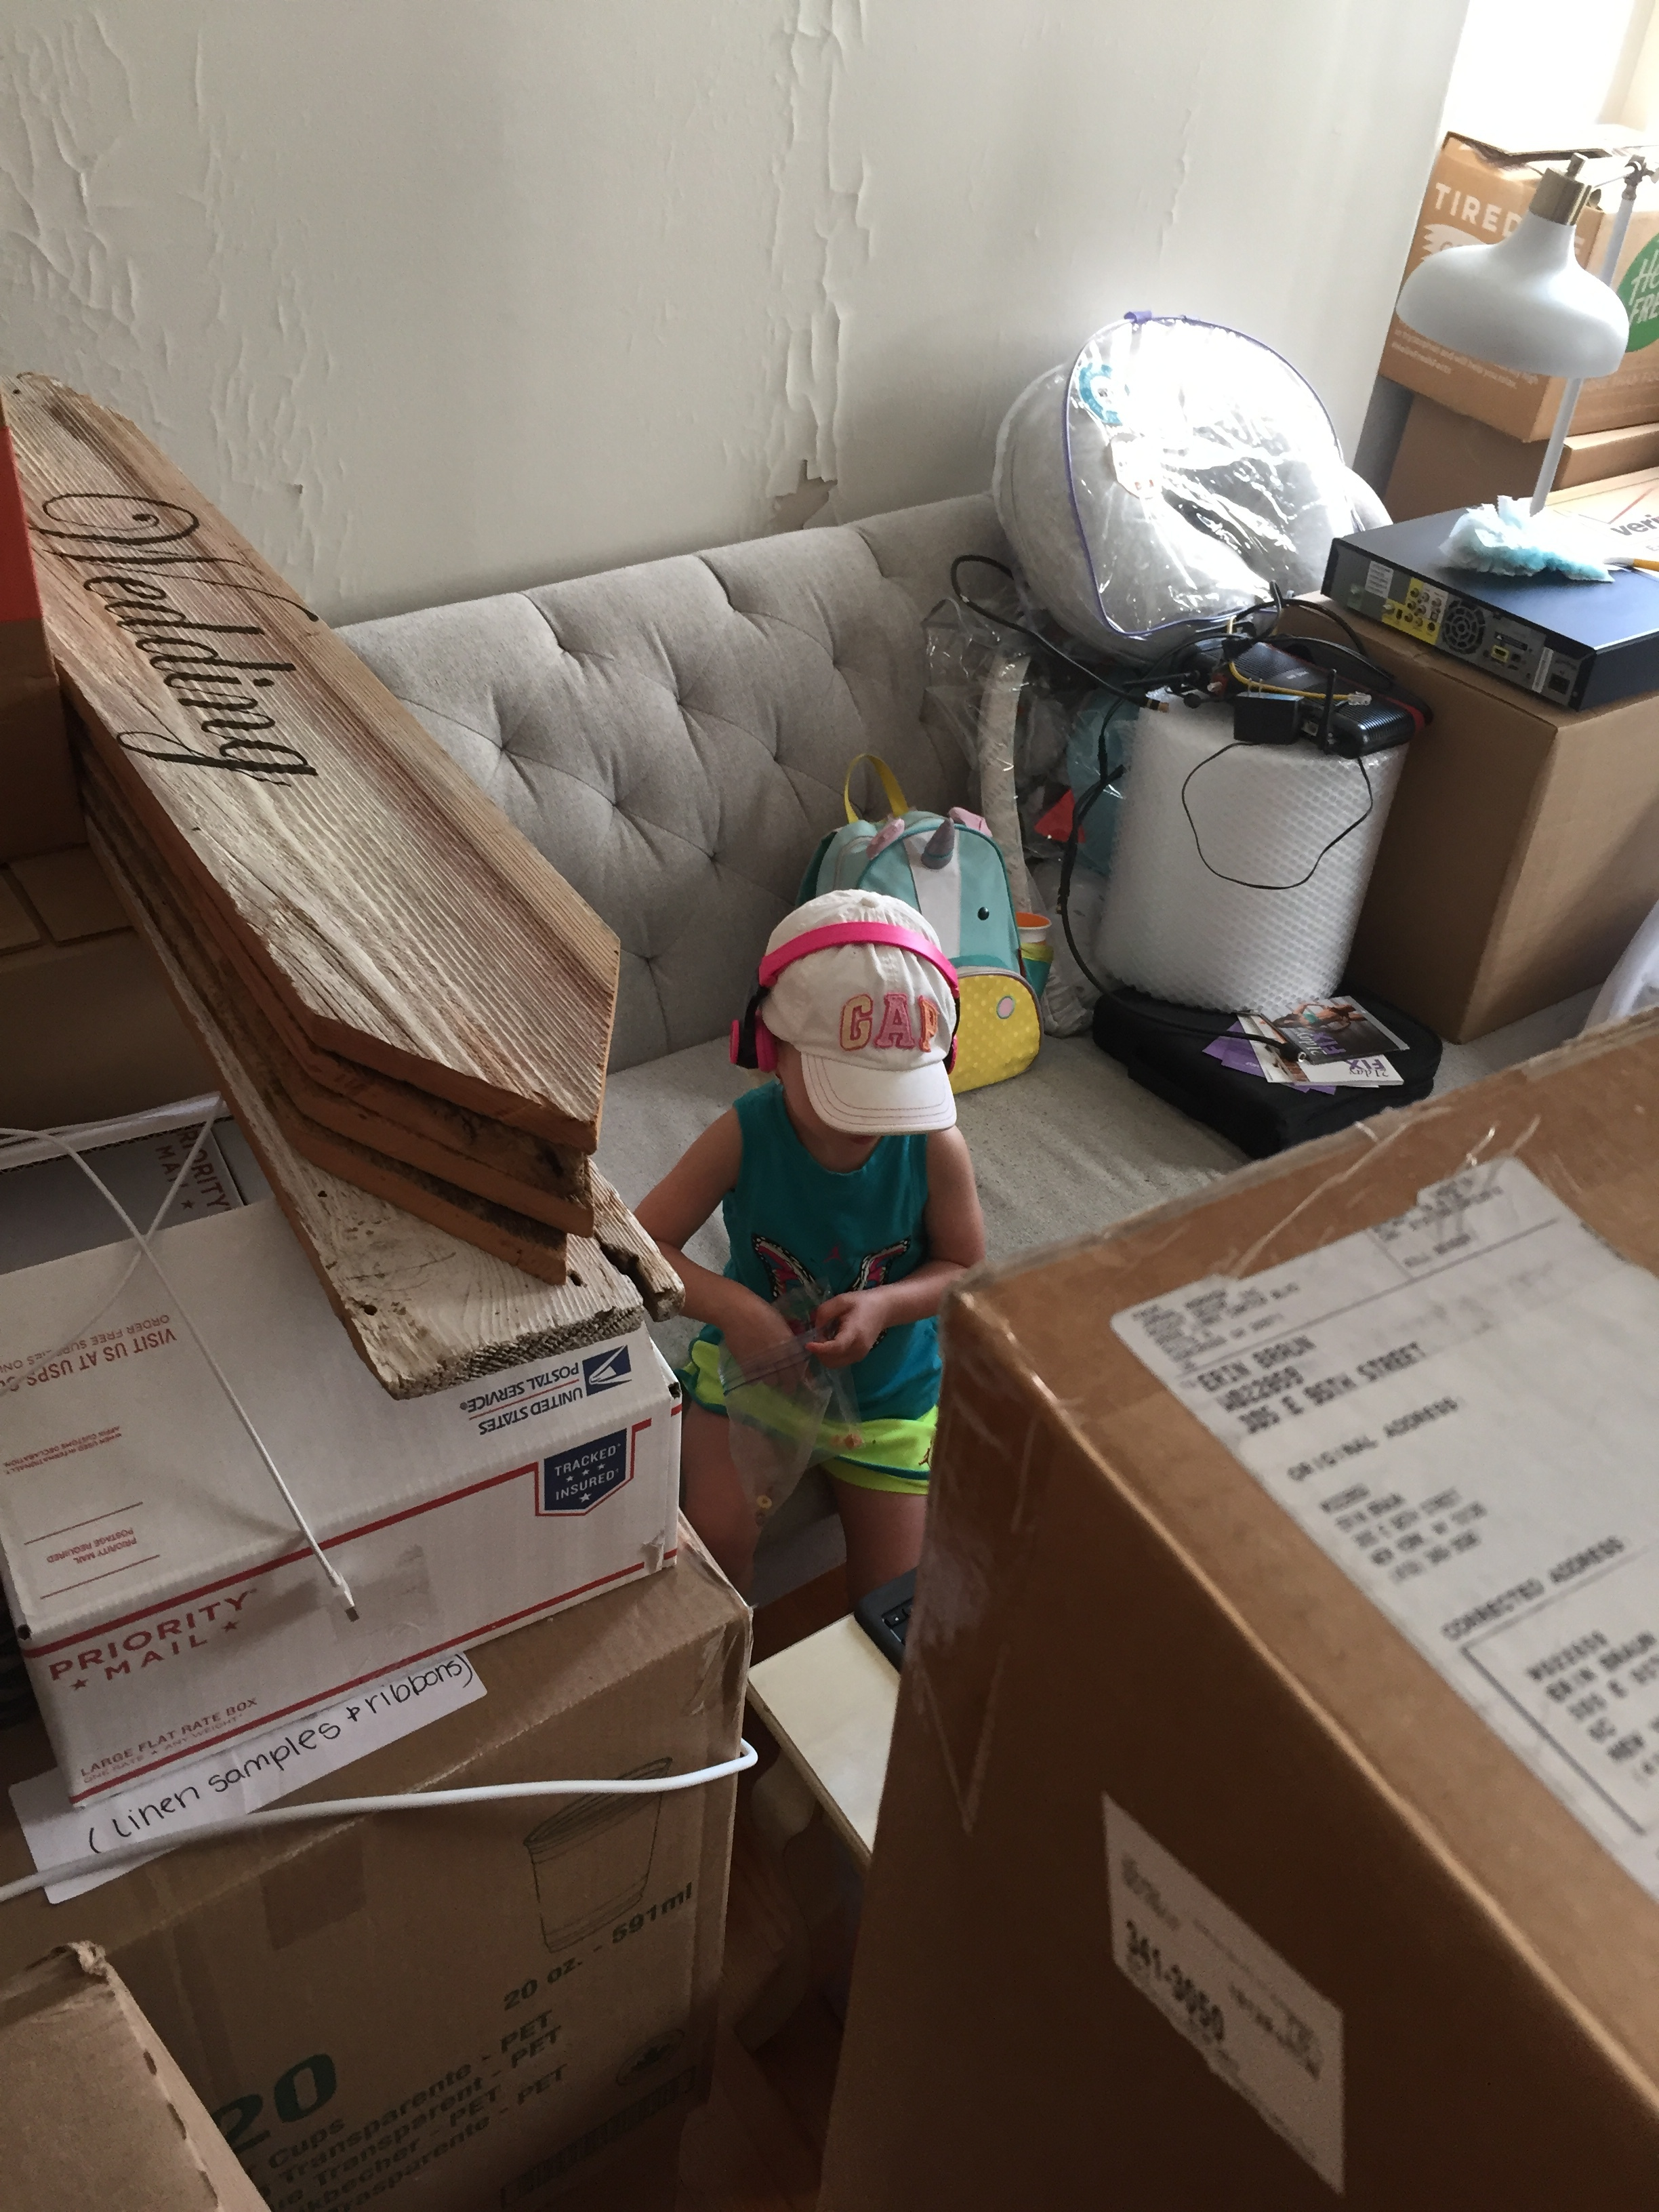 Moving day for the Brauns :(